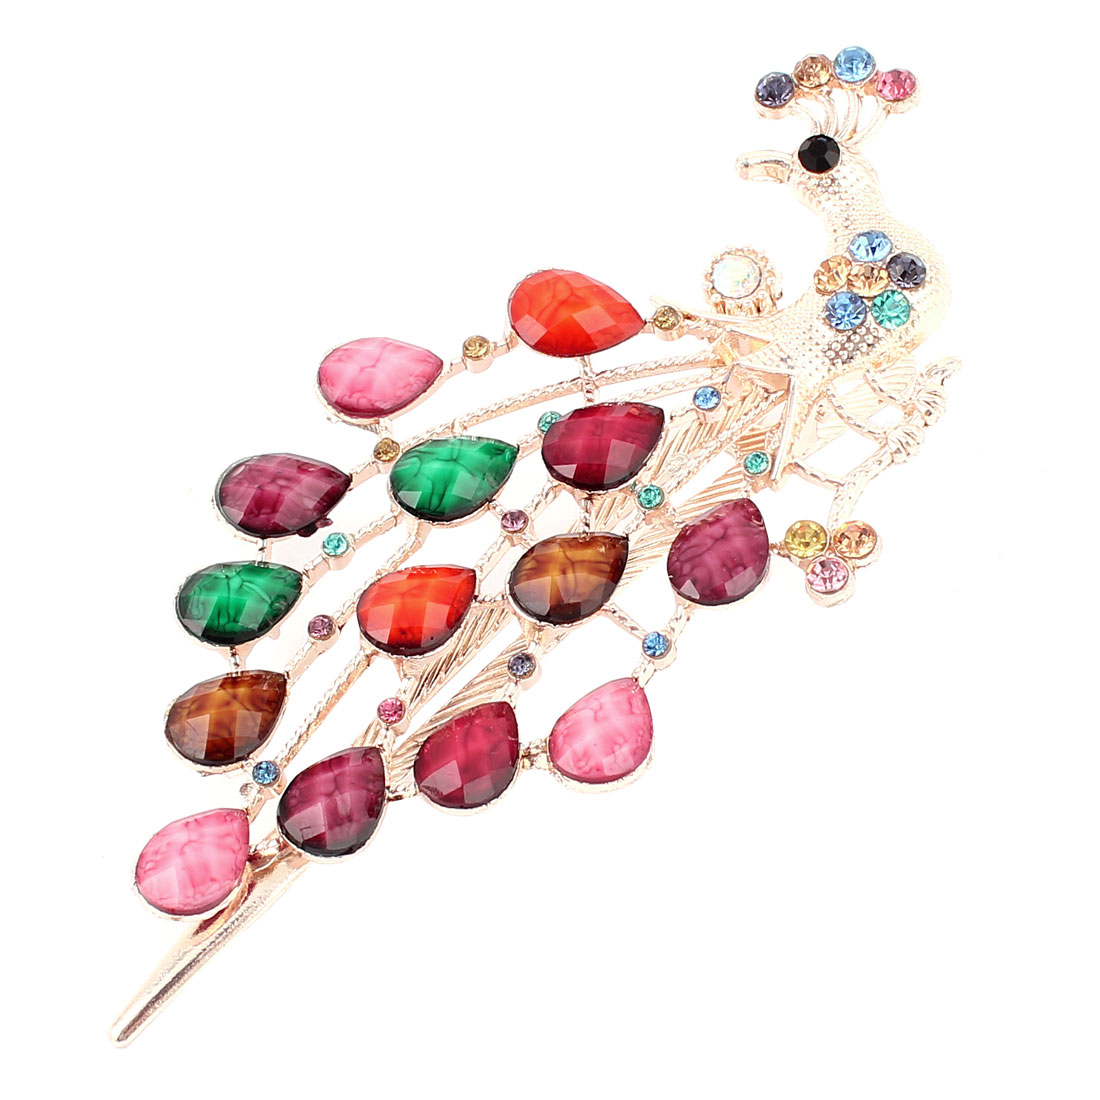 Faux Crystal Rhinestone Decor Peacock Style Single Prong Alligator Hair Clip Colorful